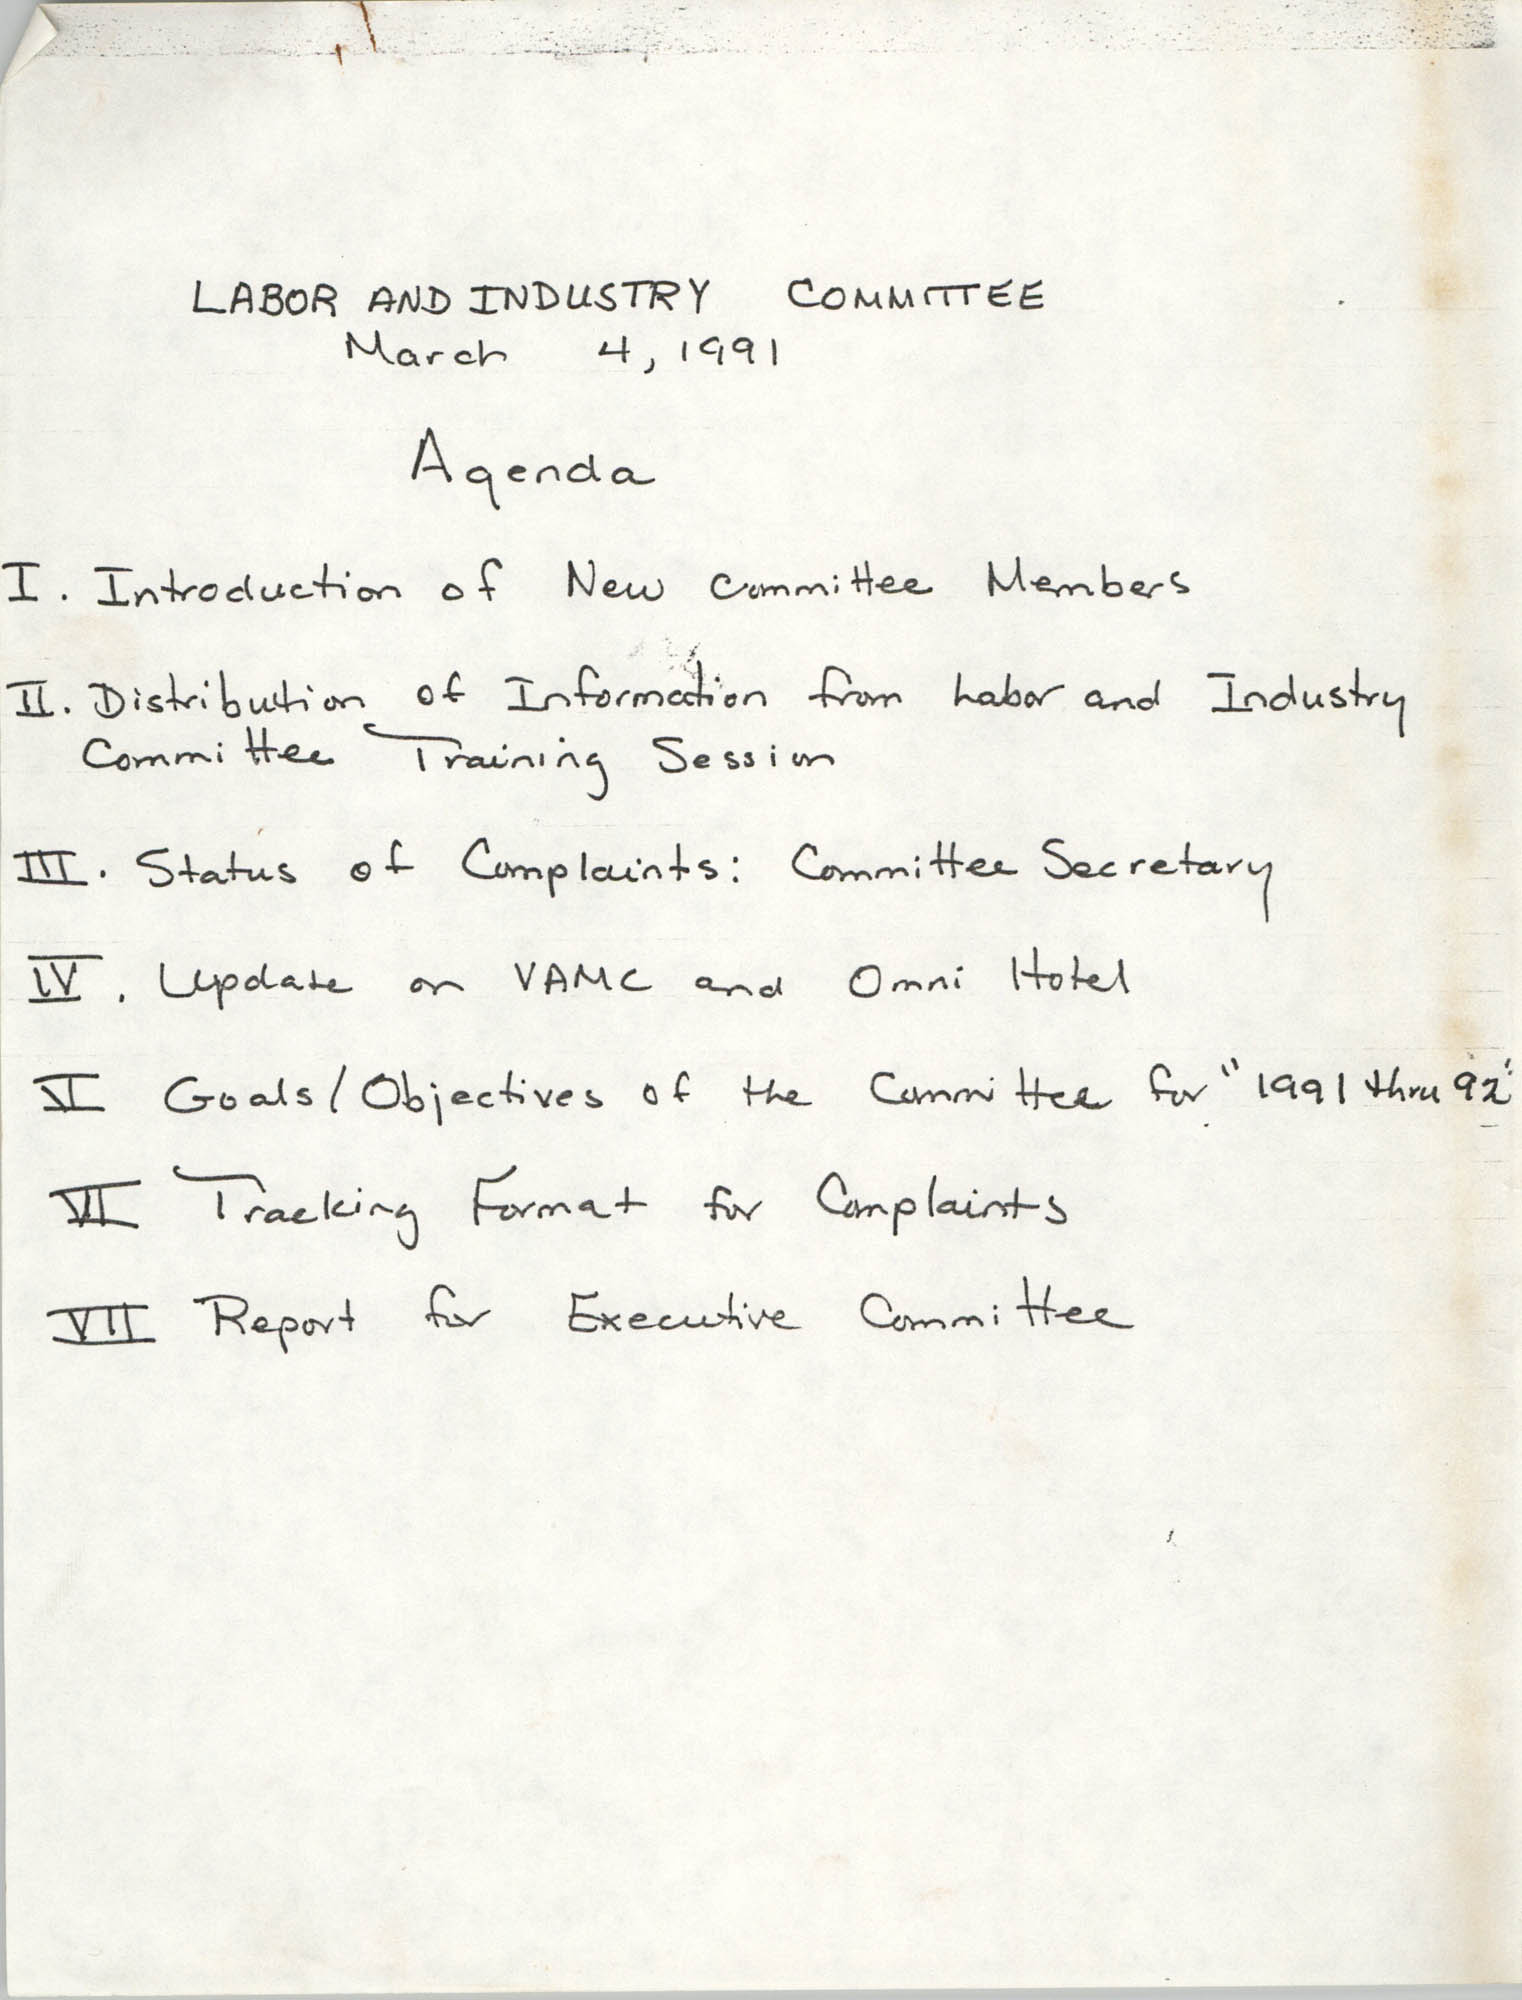 Charleston Branch of the NAACP Labor and Industry Committee Agenda, March 4, 1991